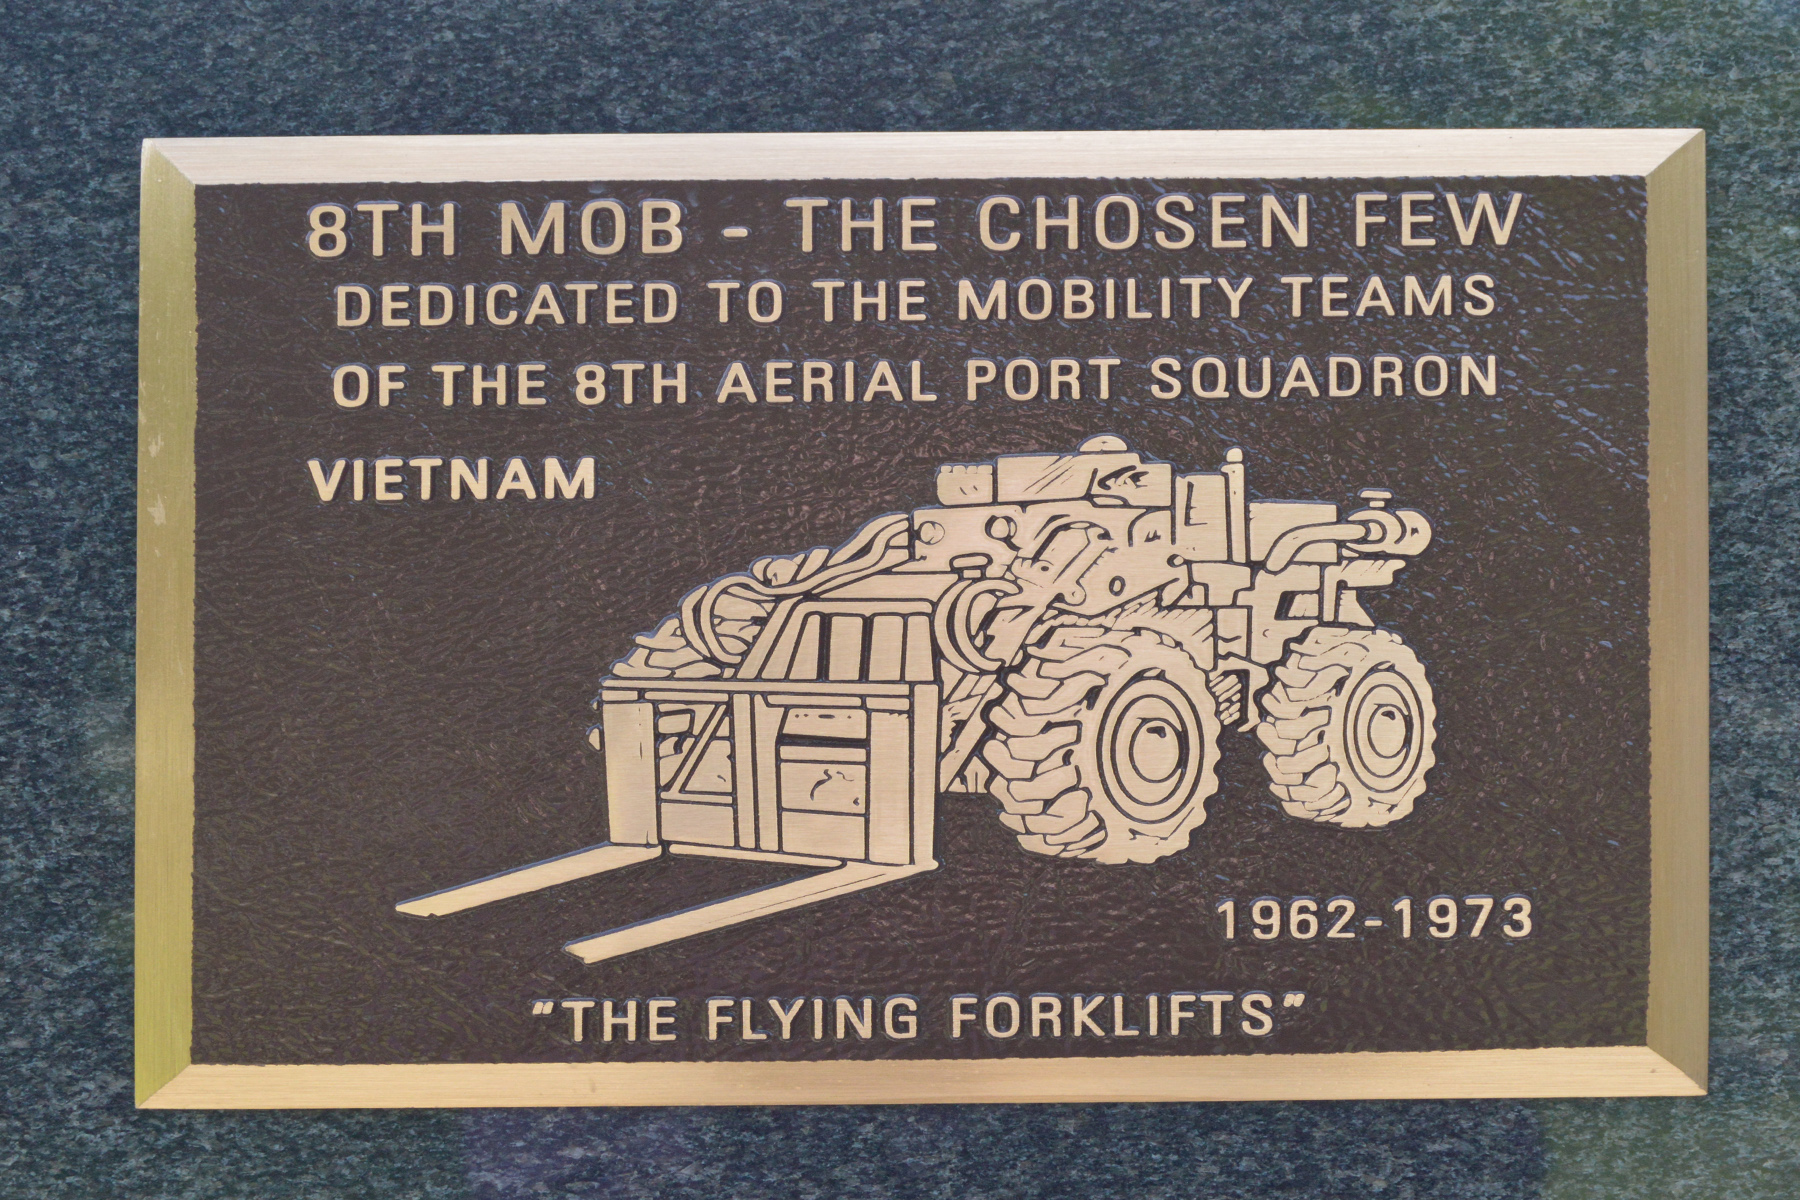 8th MOB Plaque Air Force Museum